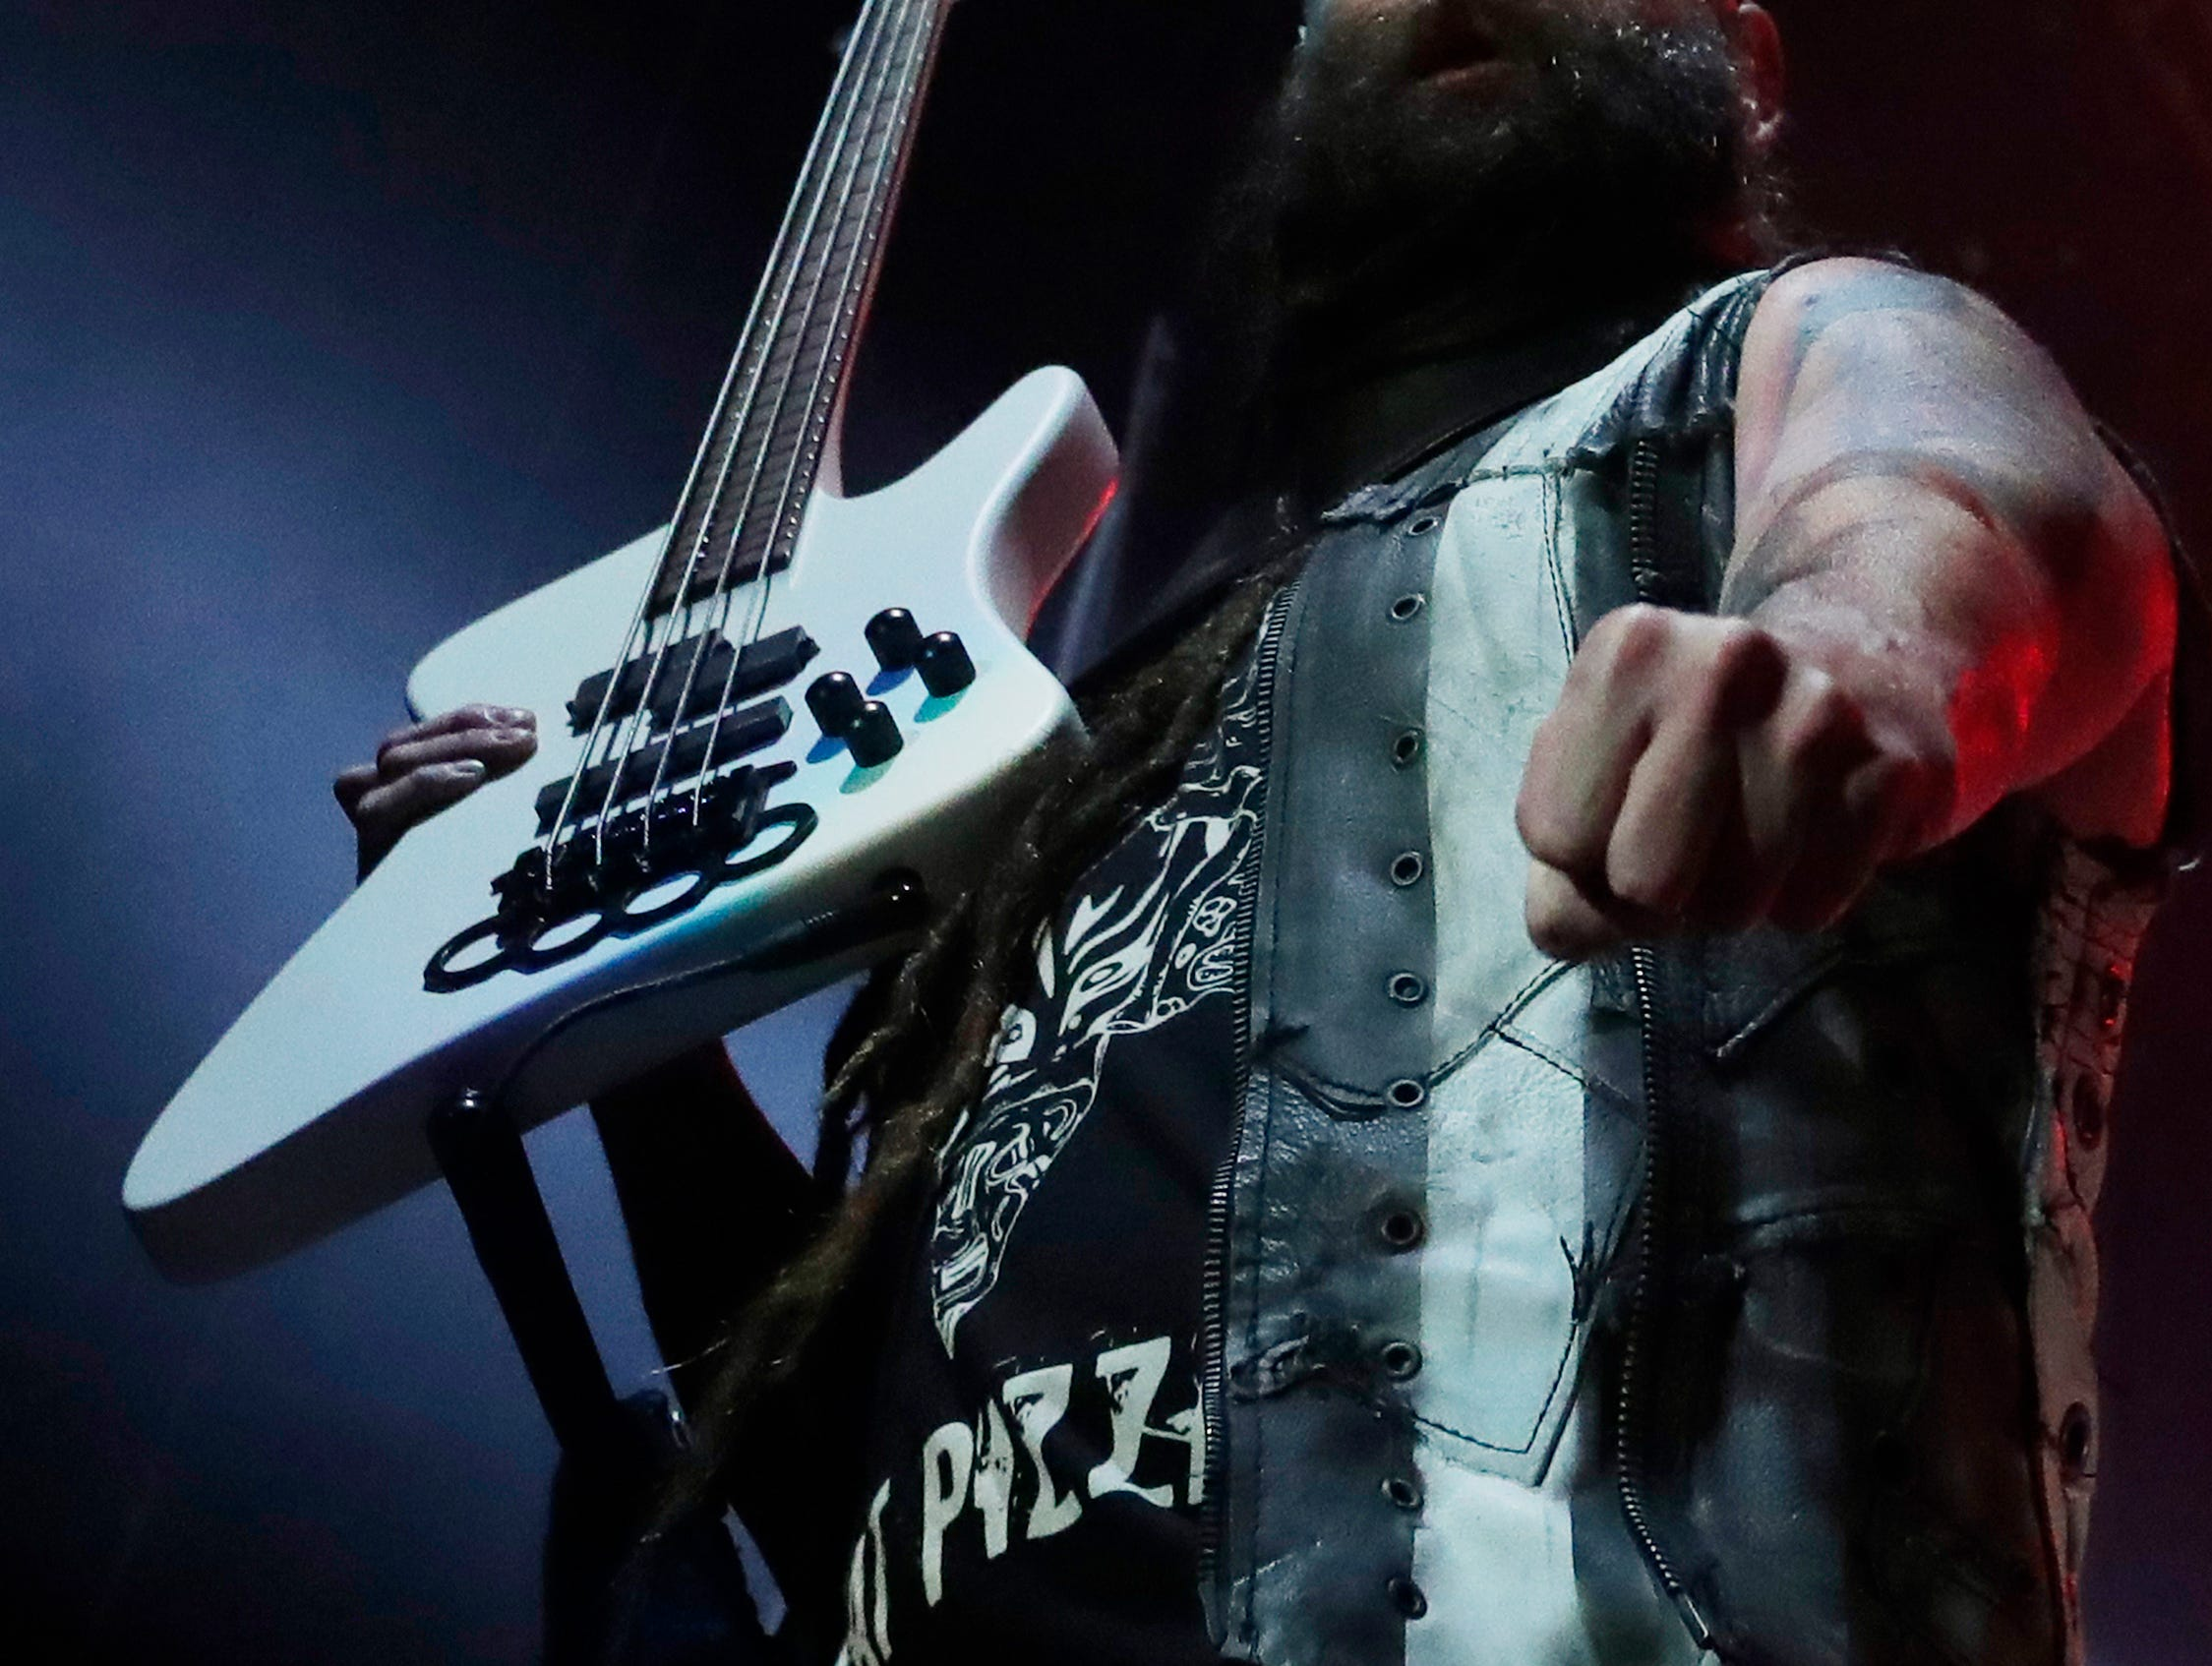 Five Finger Death Punch perform at the Resch Center on Saturday, November 24, 2018 in Ashwaubenon, Wis.